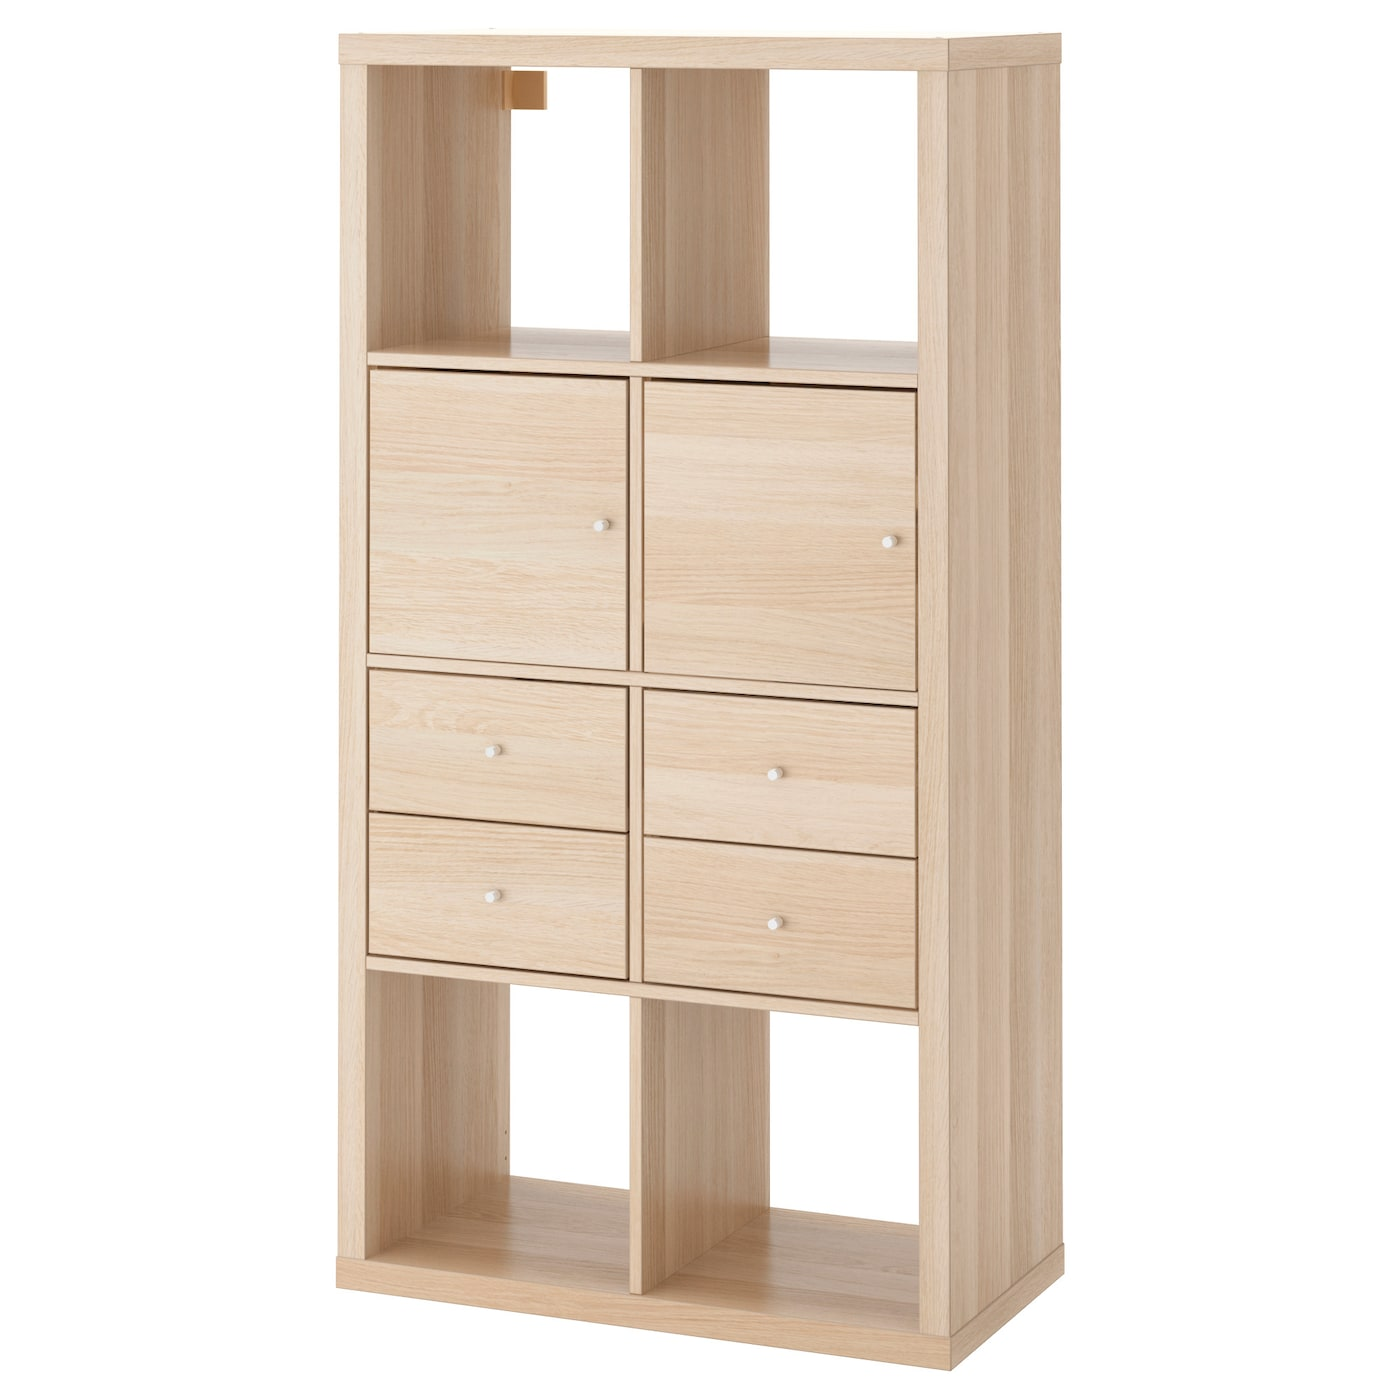 Kallax shelving unit with 4 inserts white stained oak effect 77 x 147 cm ikea - Mobile kallax ikea ...